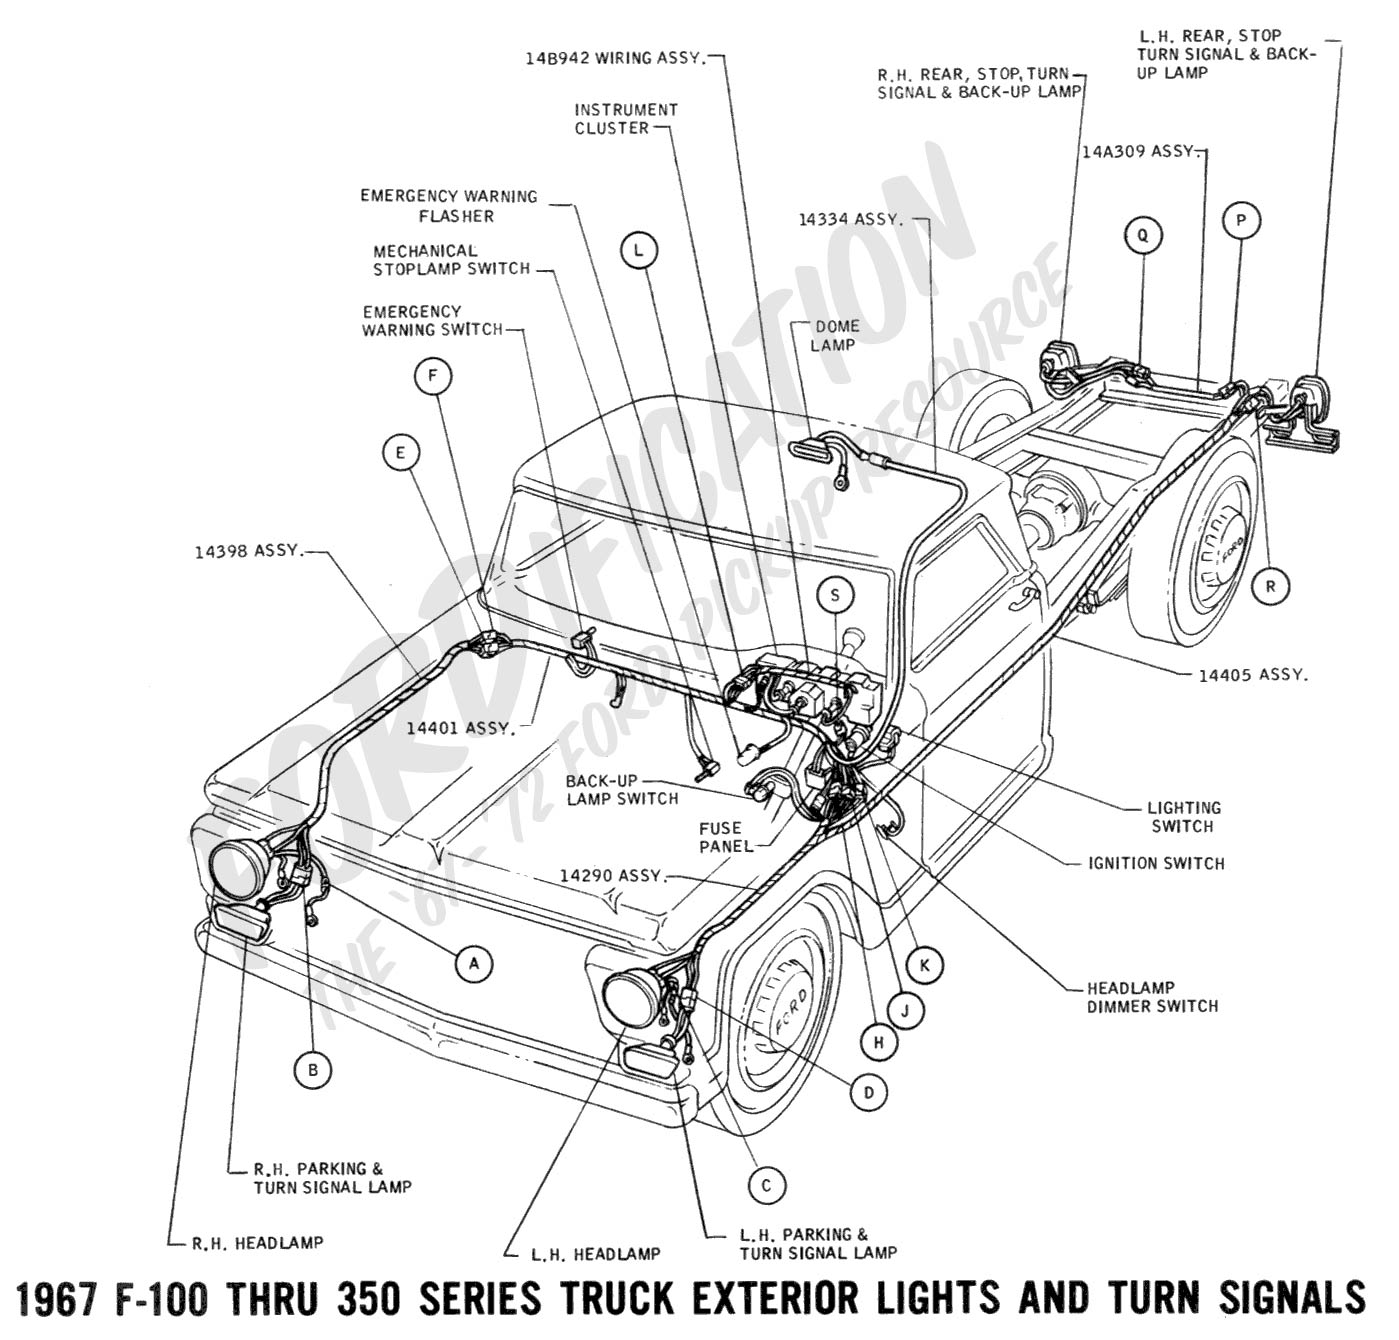 wiring 1967extlights01 ford truck technical drawings and schematics section h wiring 2013 Ford F350 Wiring Diagram at sewacar.co